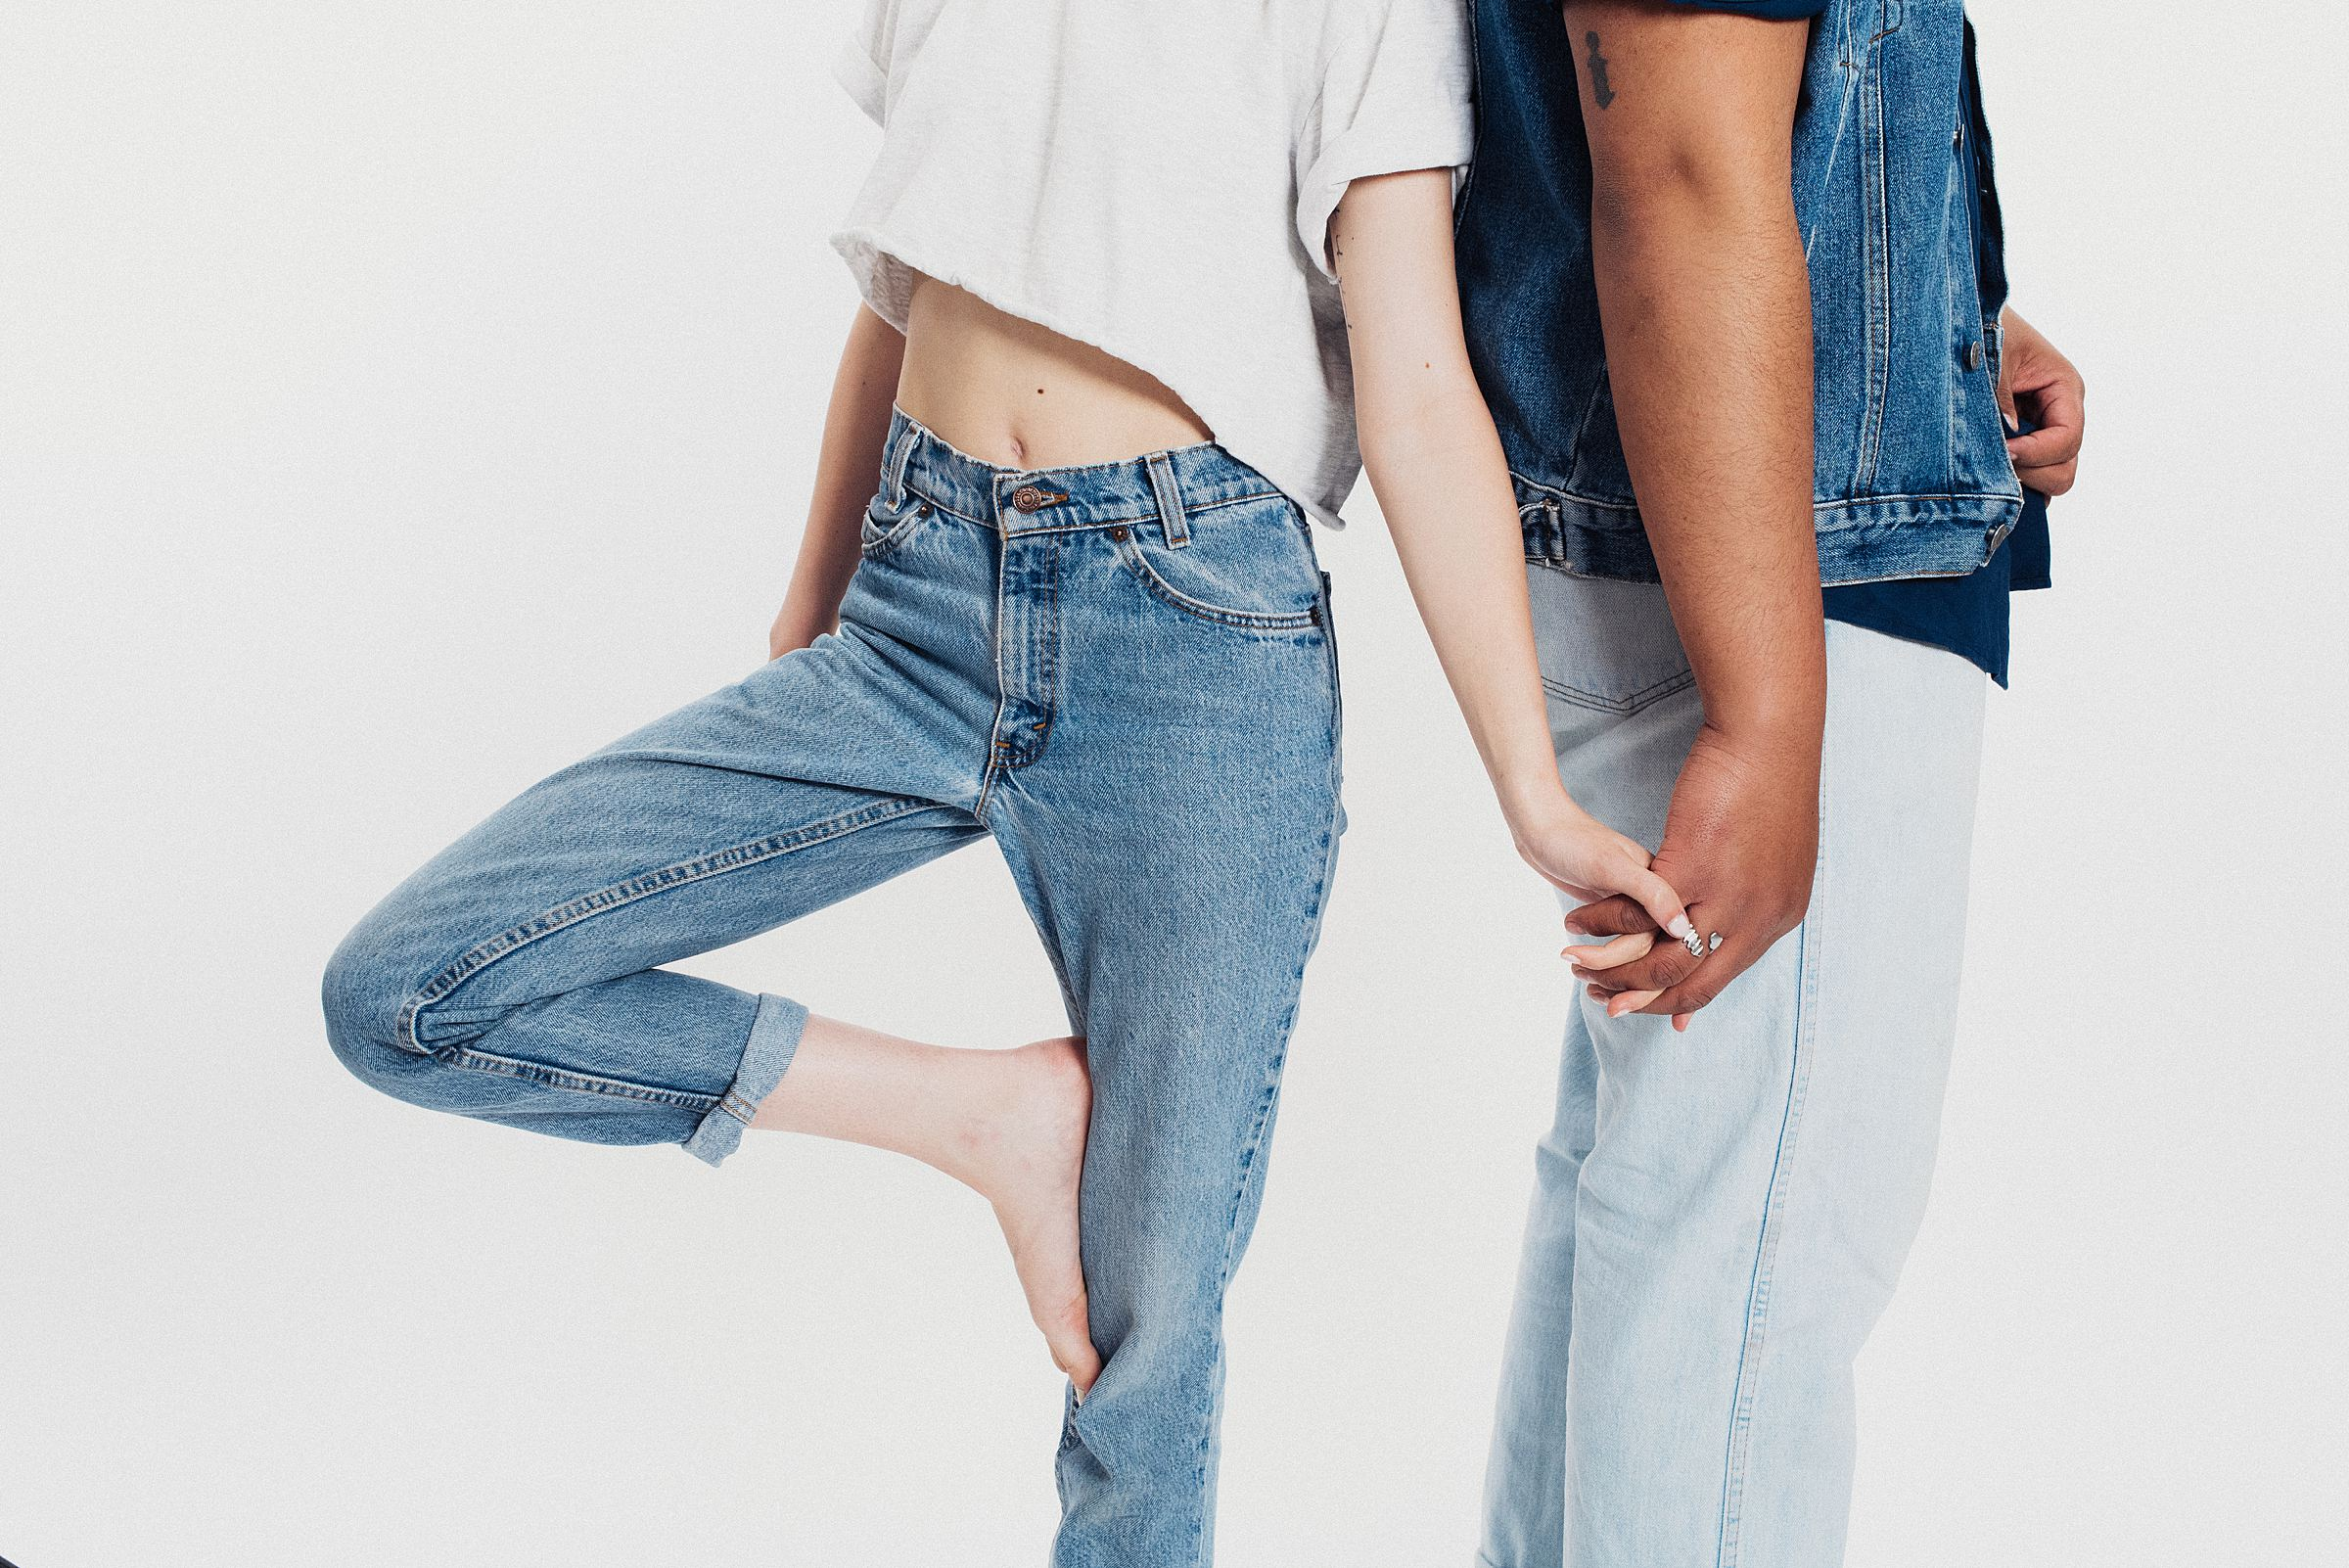 all-jean-couples-session_5390.jpg